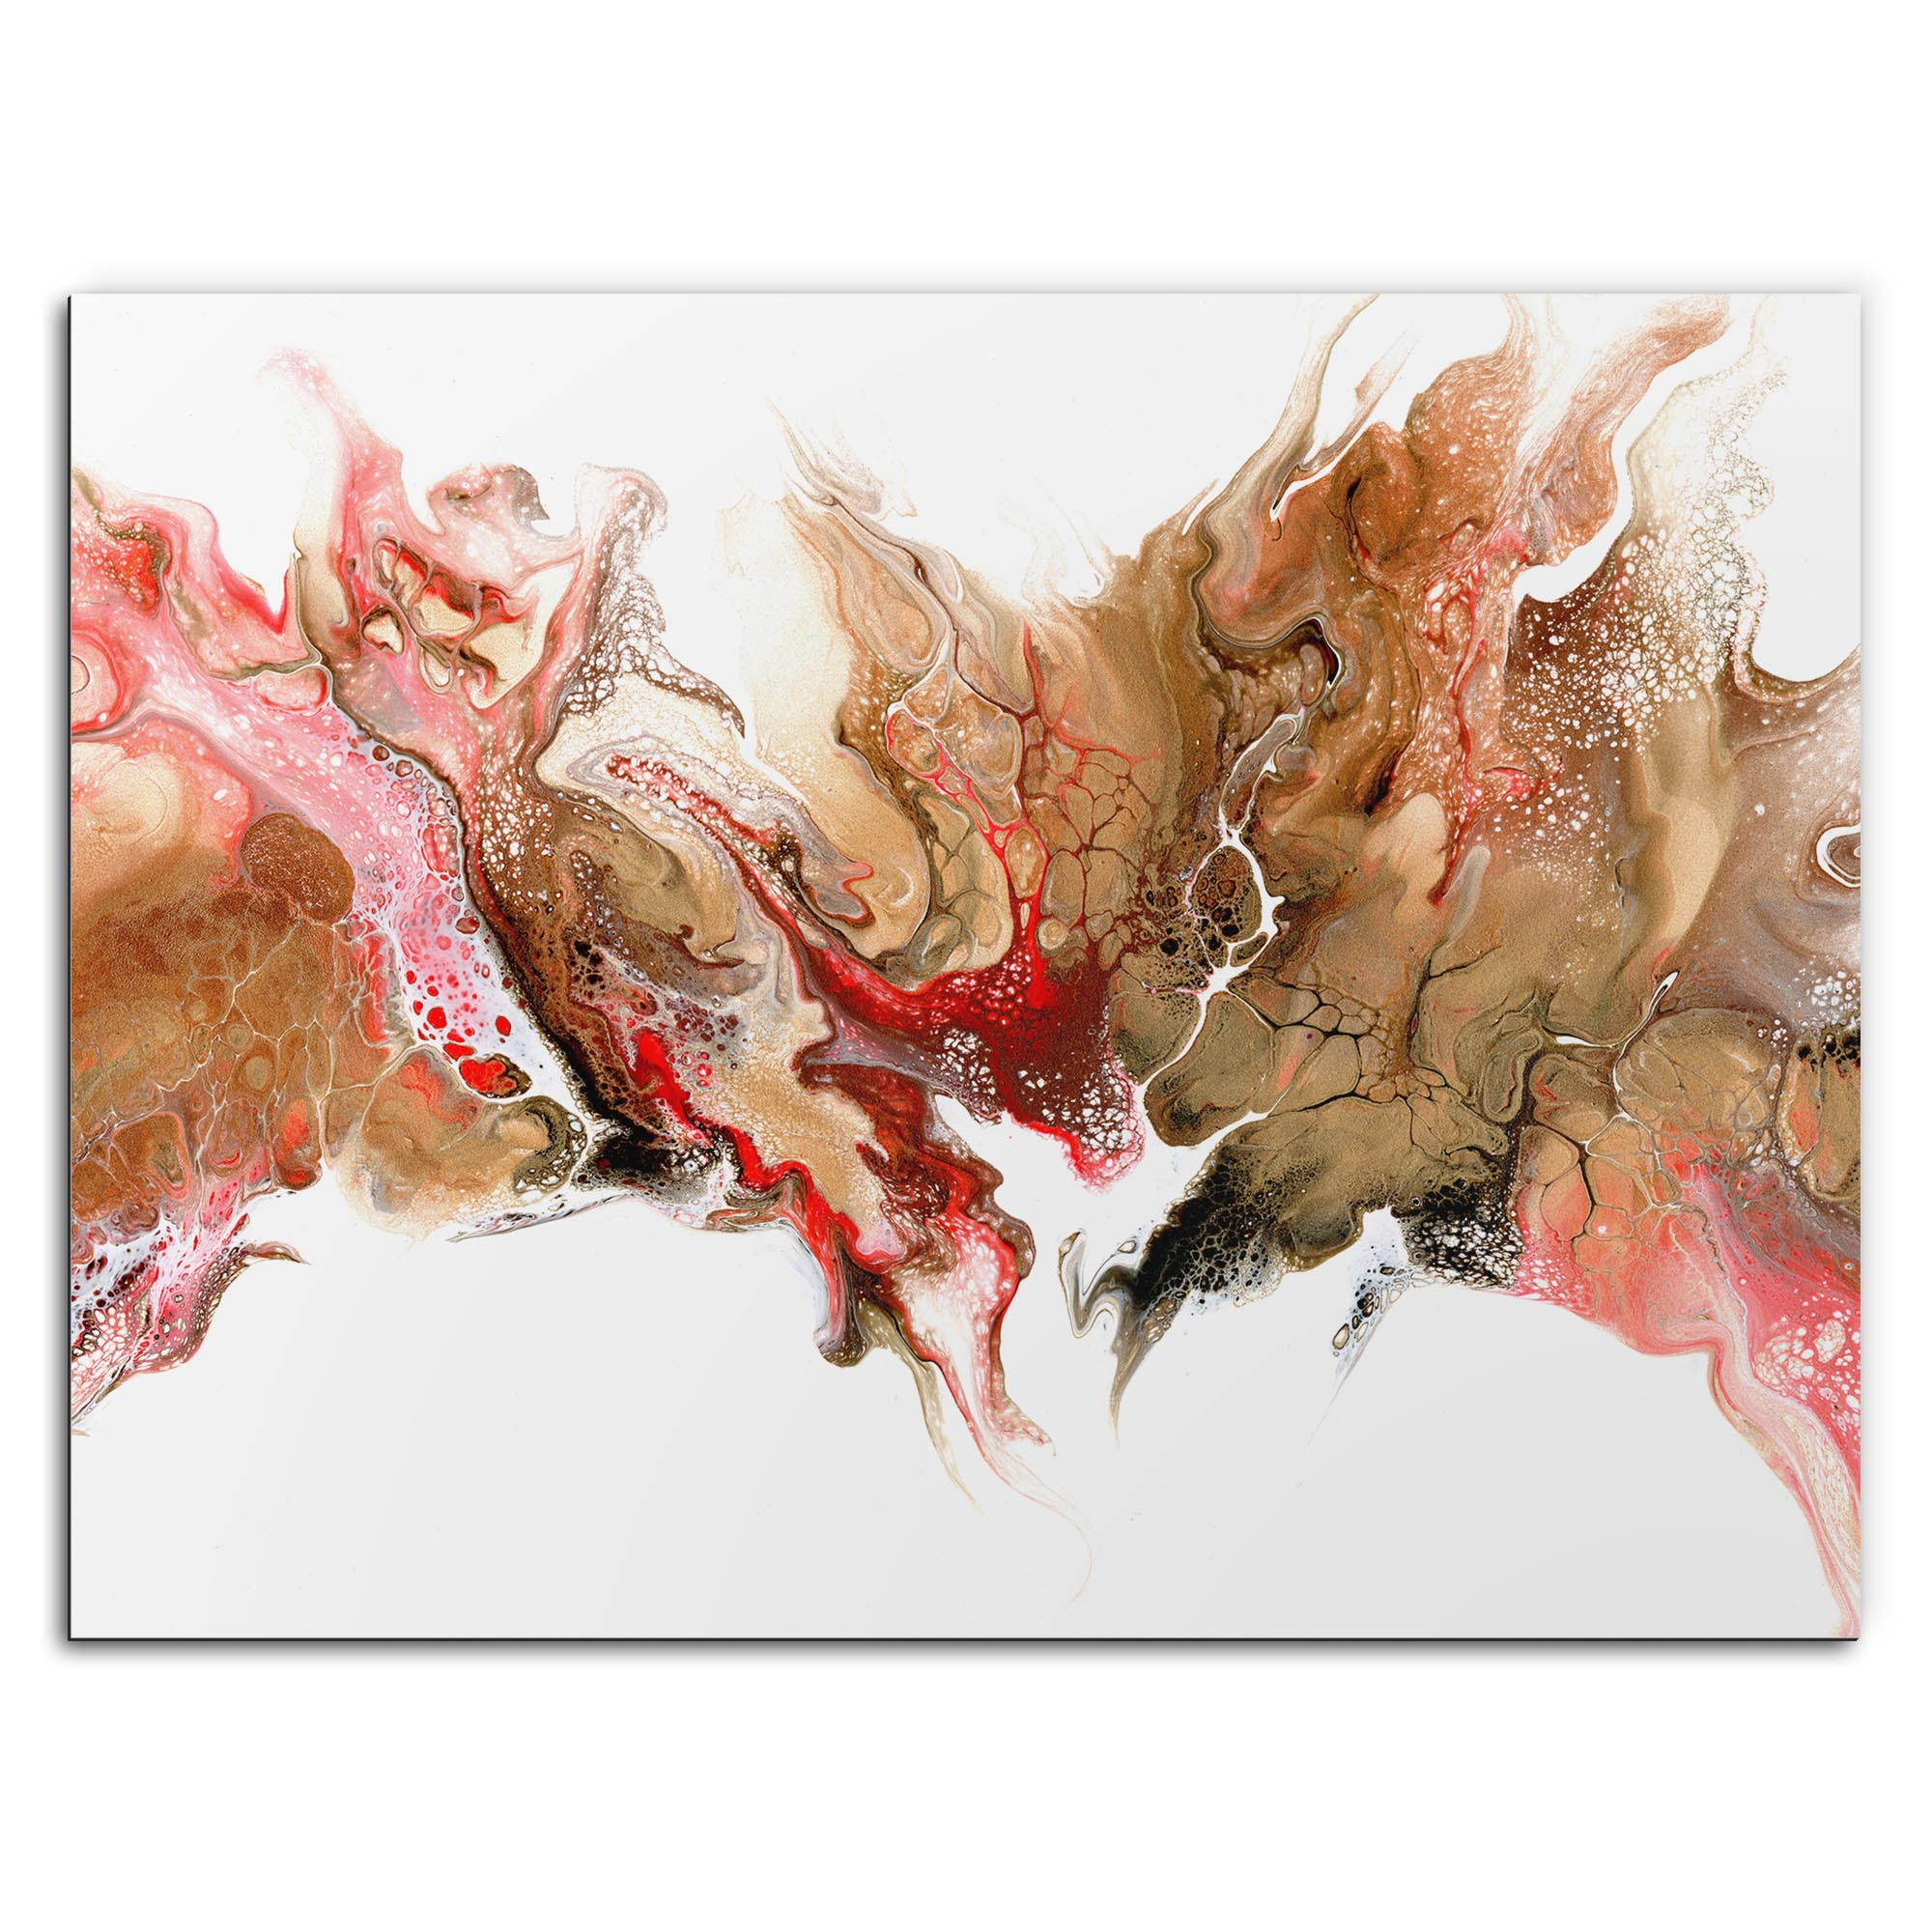 Elana Reiter 'Swelter' 32in x 24in Contemporary Style Abstract Wall Art